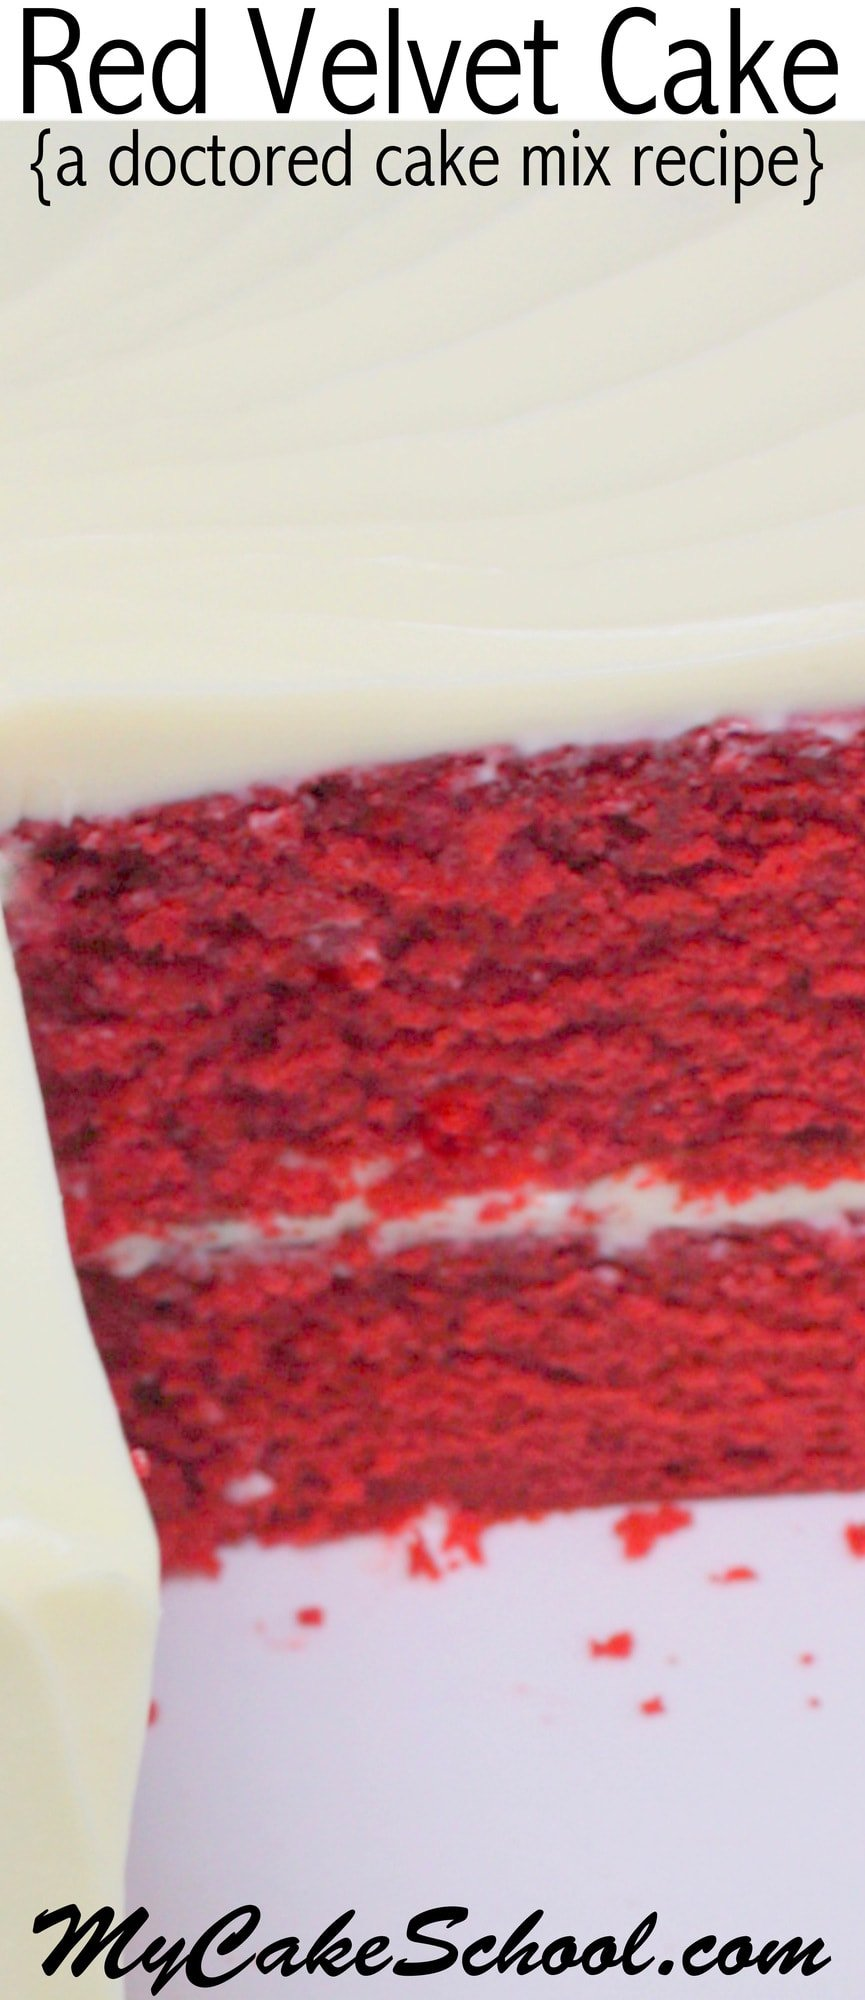 We've fallen in love with this moist and flavorful Red Velvet Cake-Doctored Cake Mix recipe! This tastes just like scratch Red Velvet Cake and is SO easy to make! MyCakeSchool.com.